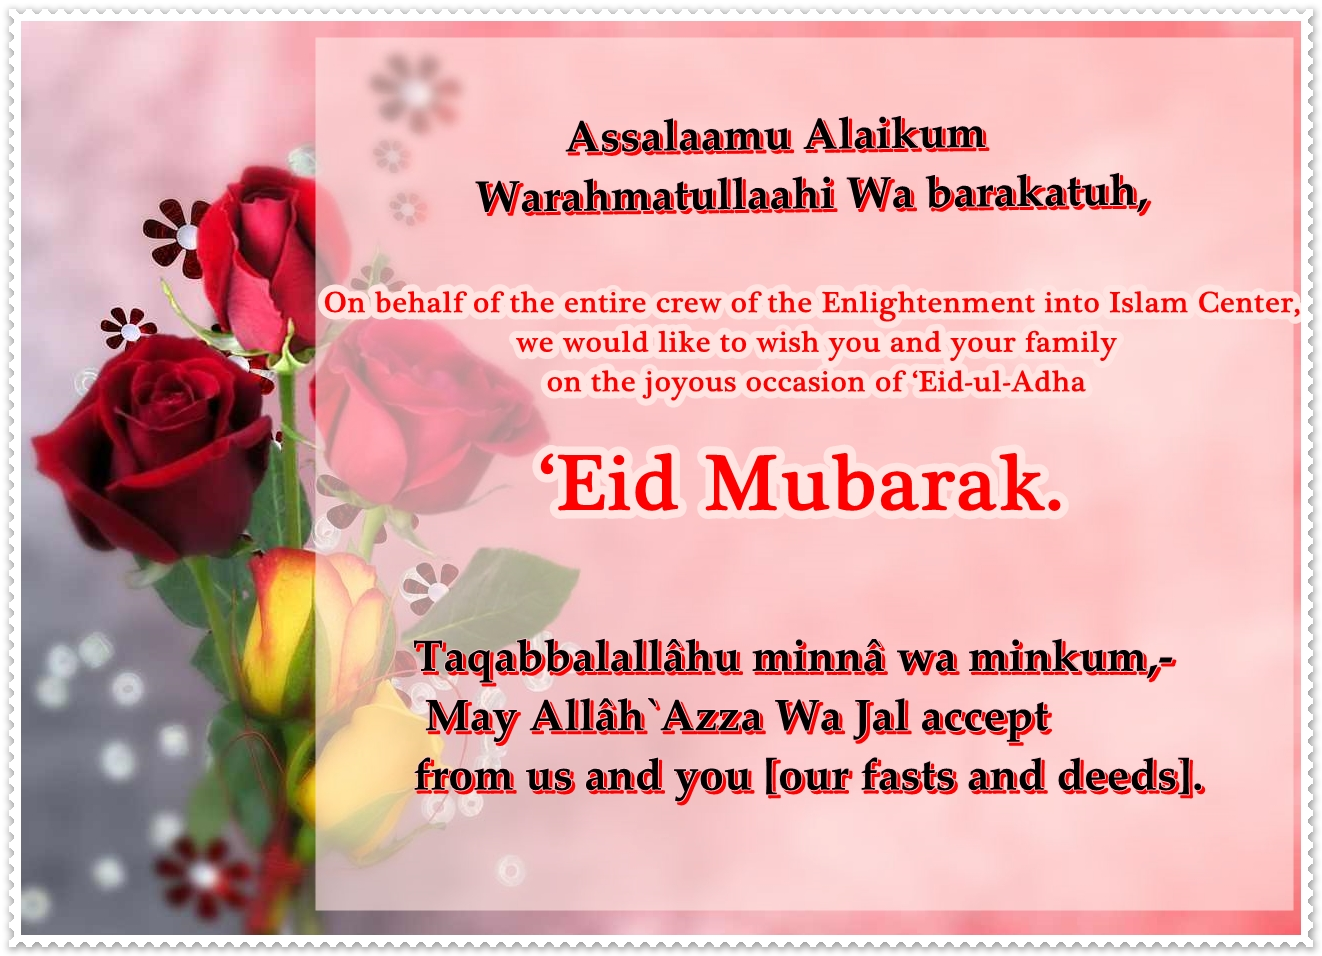 Eid Mubarak Greeting Quotes: Eid-Al Adha Mubarak From The Enlightenment Into Islam